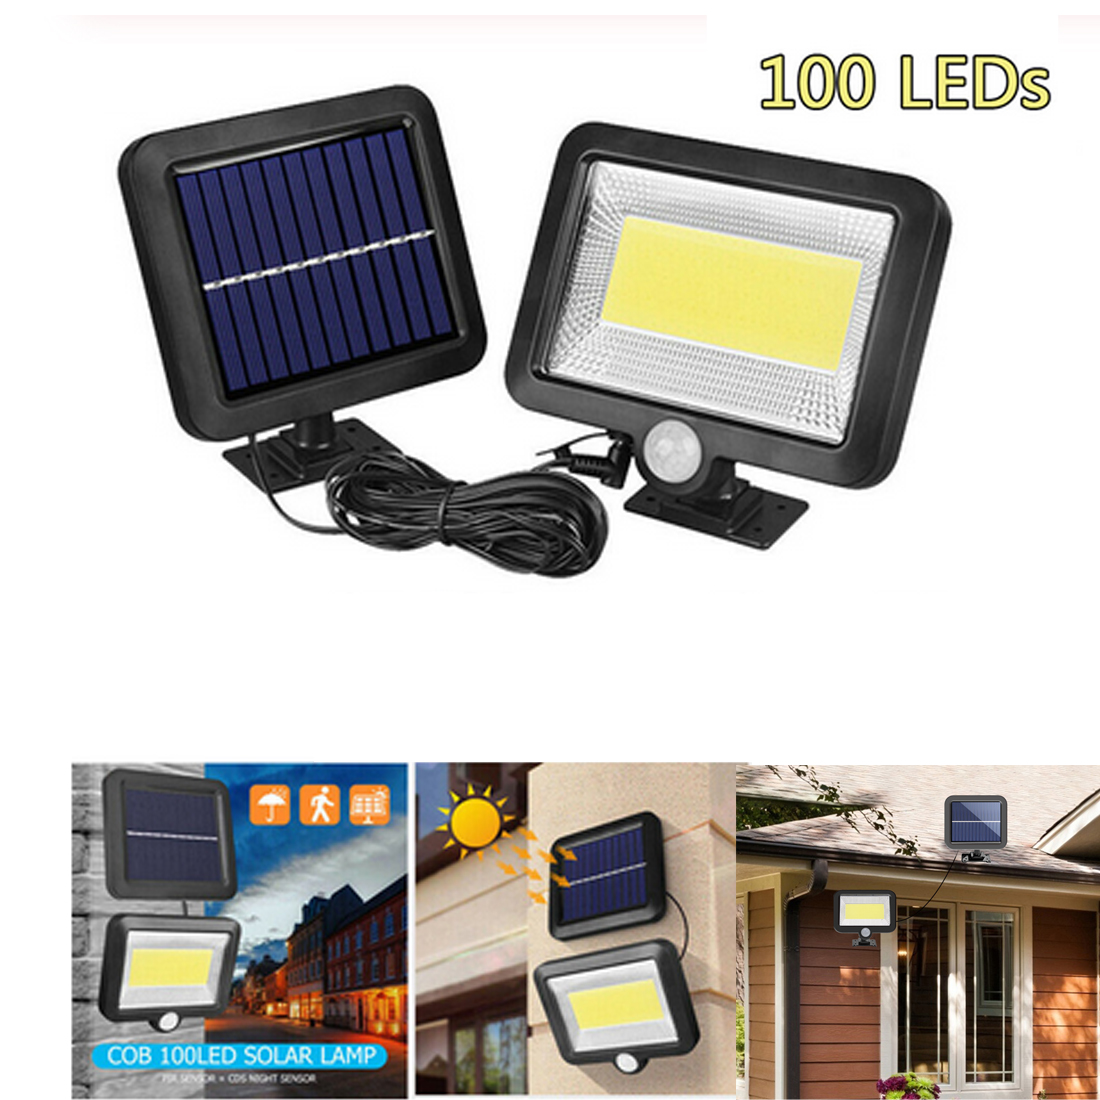 COB 56/100LED Solar Lamp Motion Sensor Waterproof Outdoor Path Support Outdoor Lighting Solar Light Sunlight Dropship